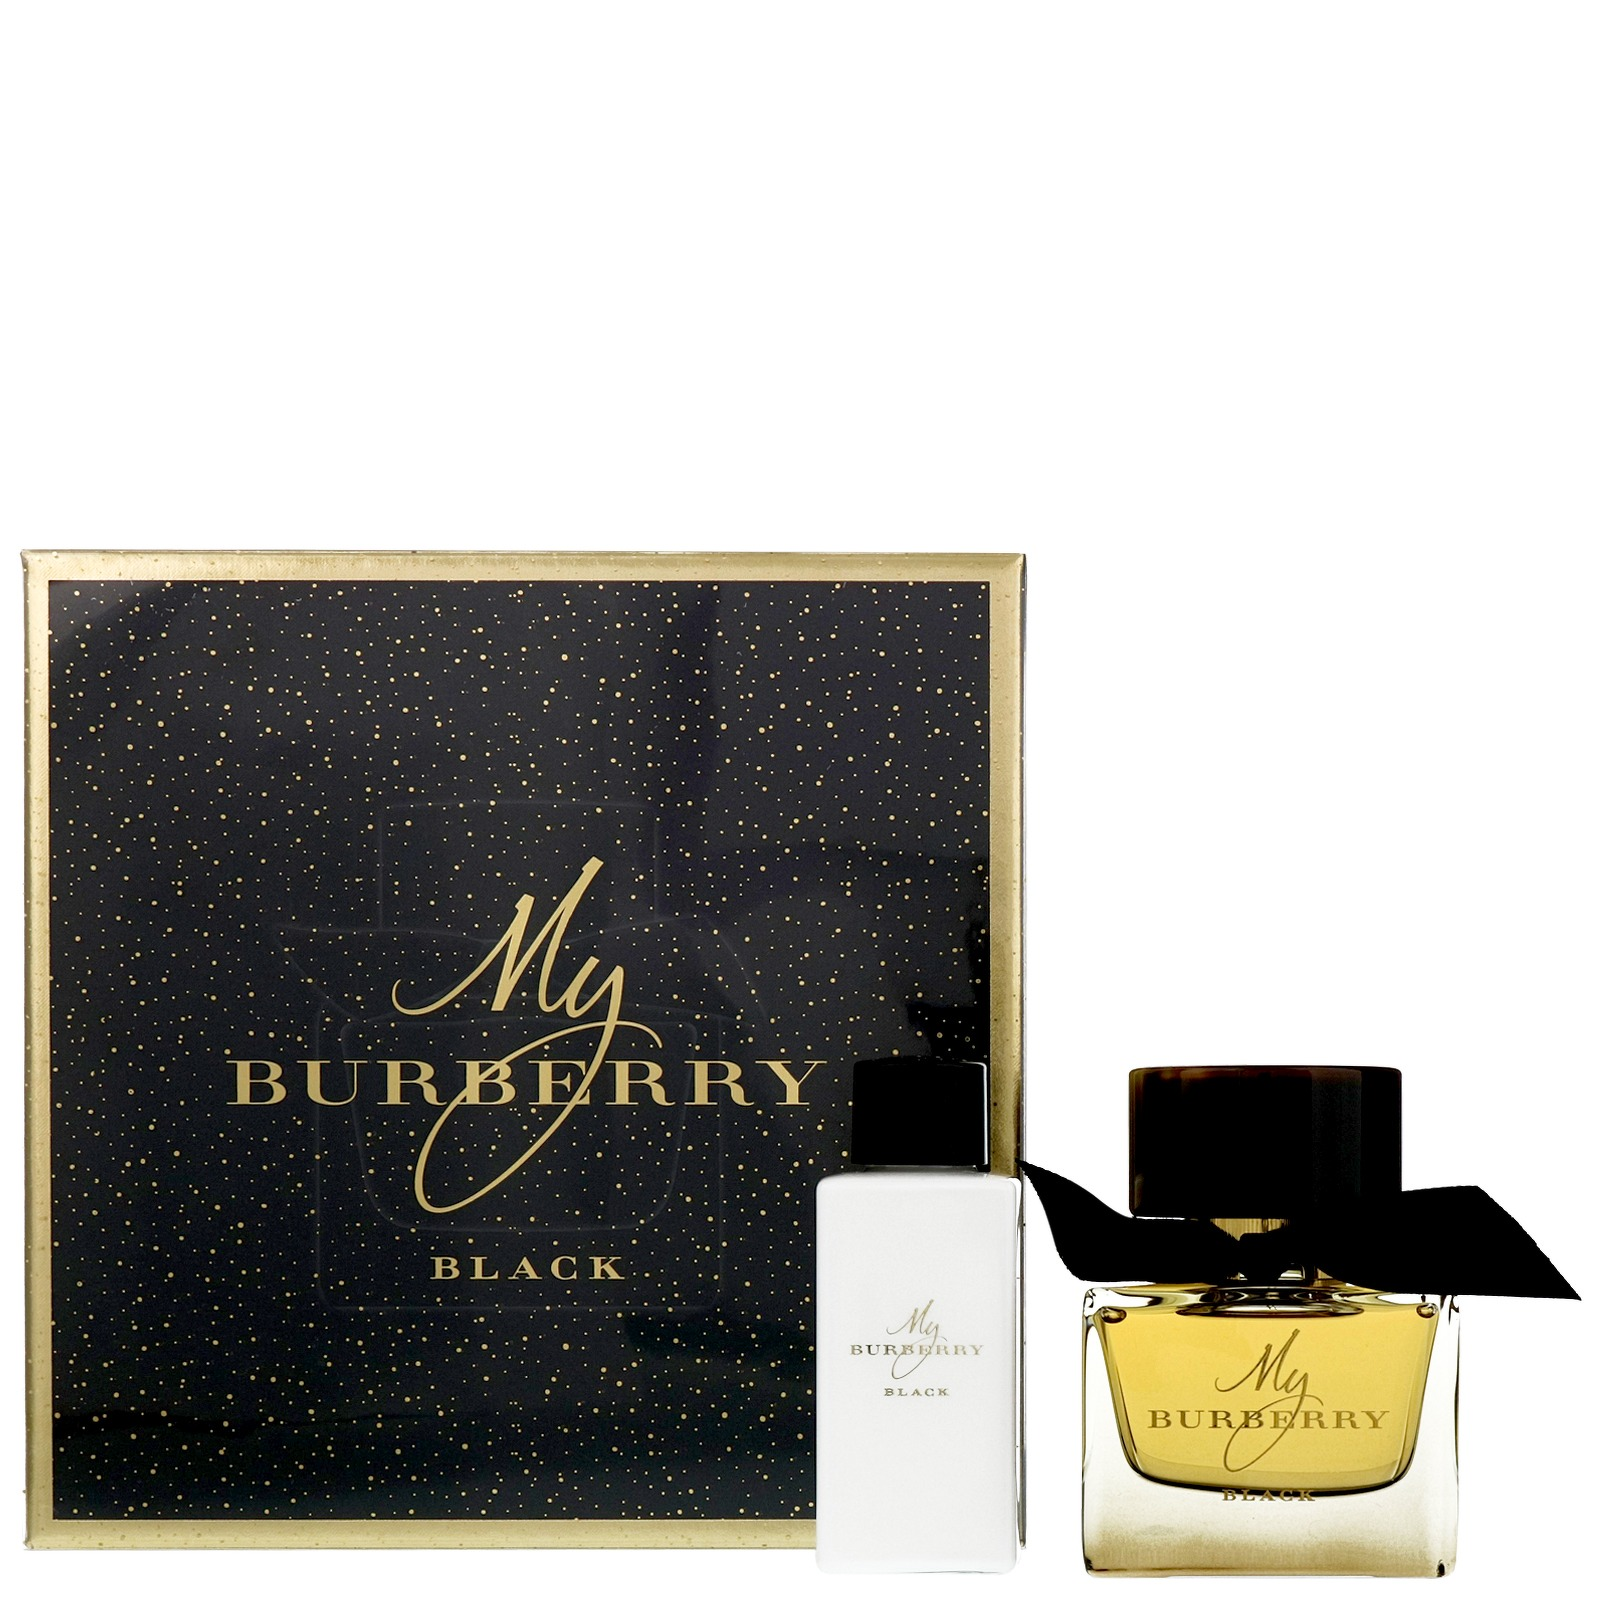 Black Burberry Eau De Set My Spray 50ml Parfum Gift zVqSUpMG